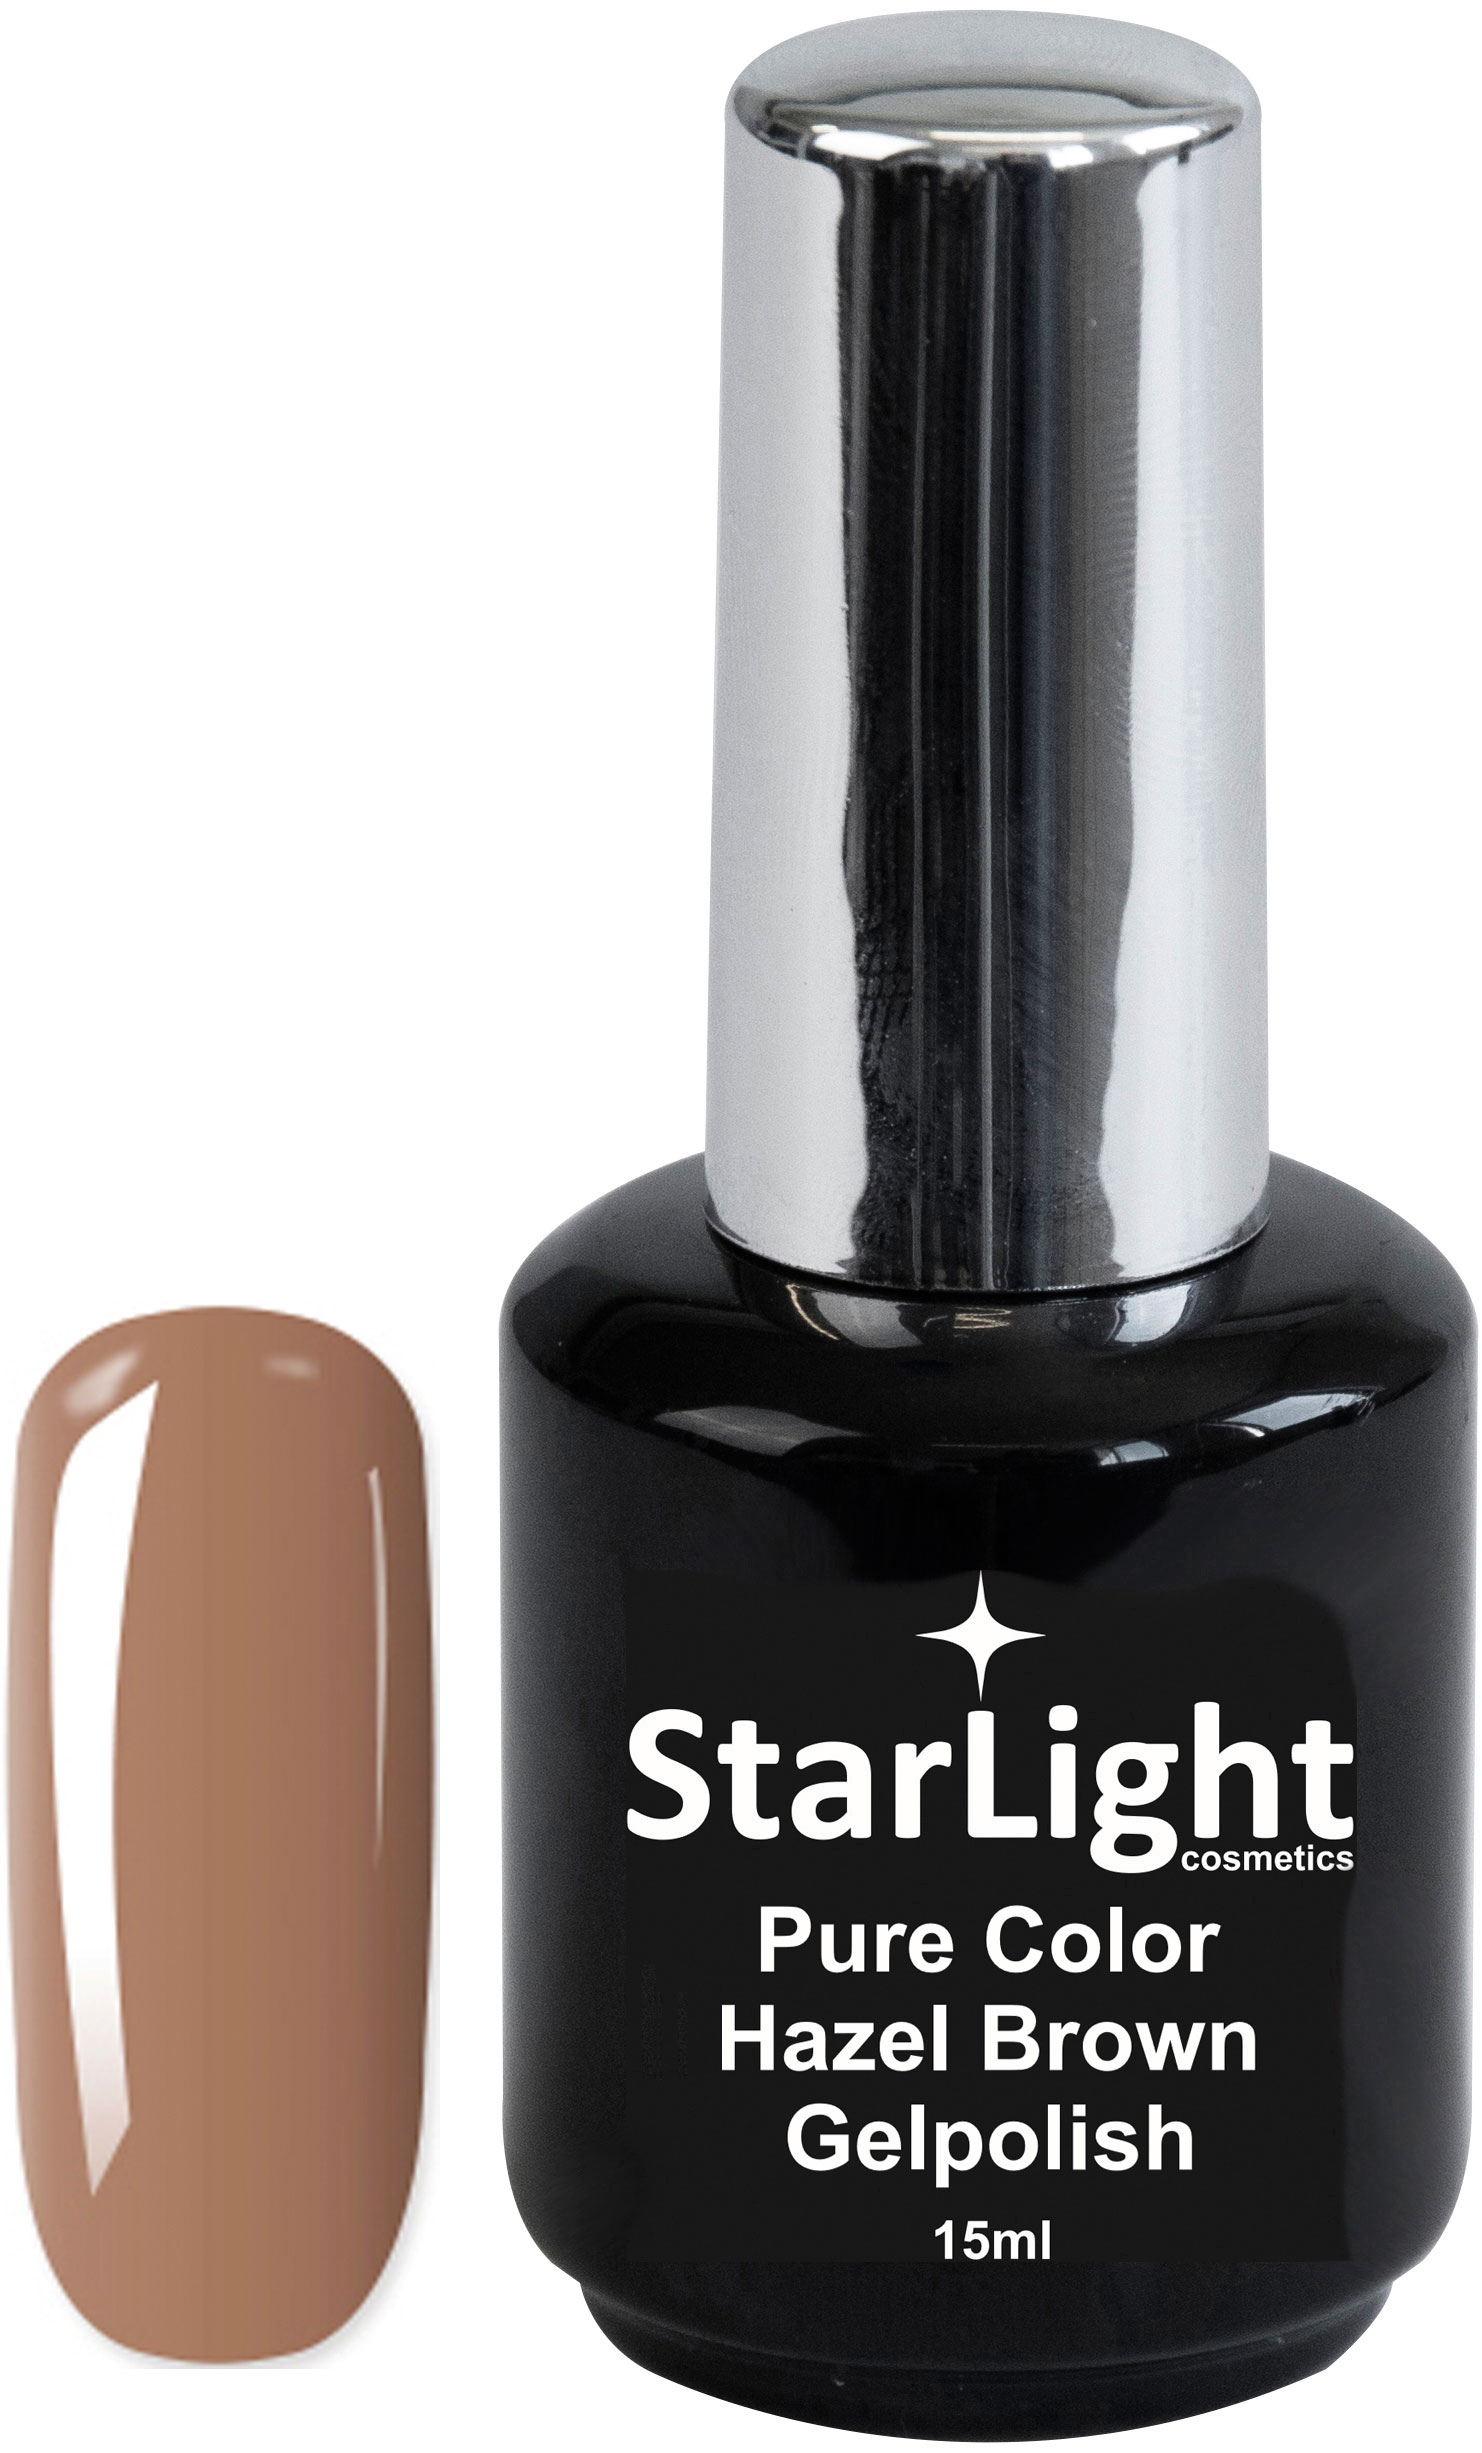 Naglar Gelpolish Pure Color Hazel Brown - 15 ml